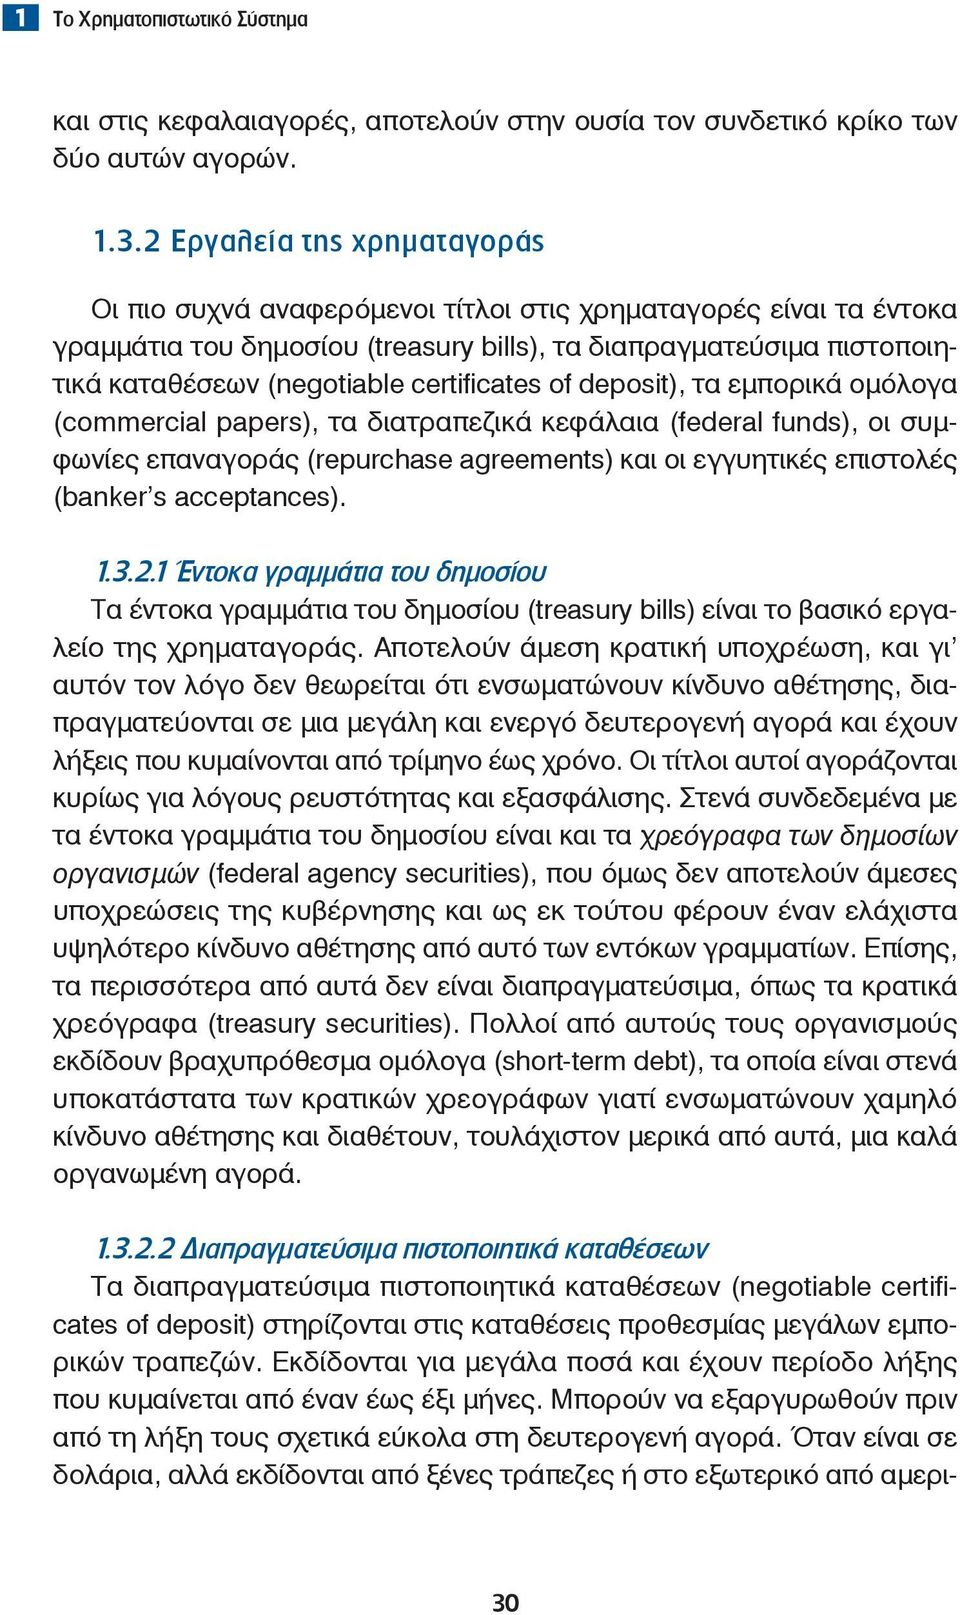 certificates of deposit), τα εμπορικά ομόλογα (commercial papers), τα διατραπεζικά κεφάλαια (federal funds), οι συμφωνίες επαναγοράς (repurchase agreements) και οι εγγυητικές επιστολές (banker s